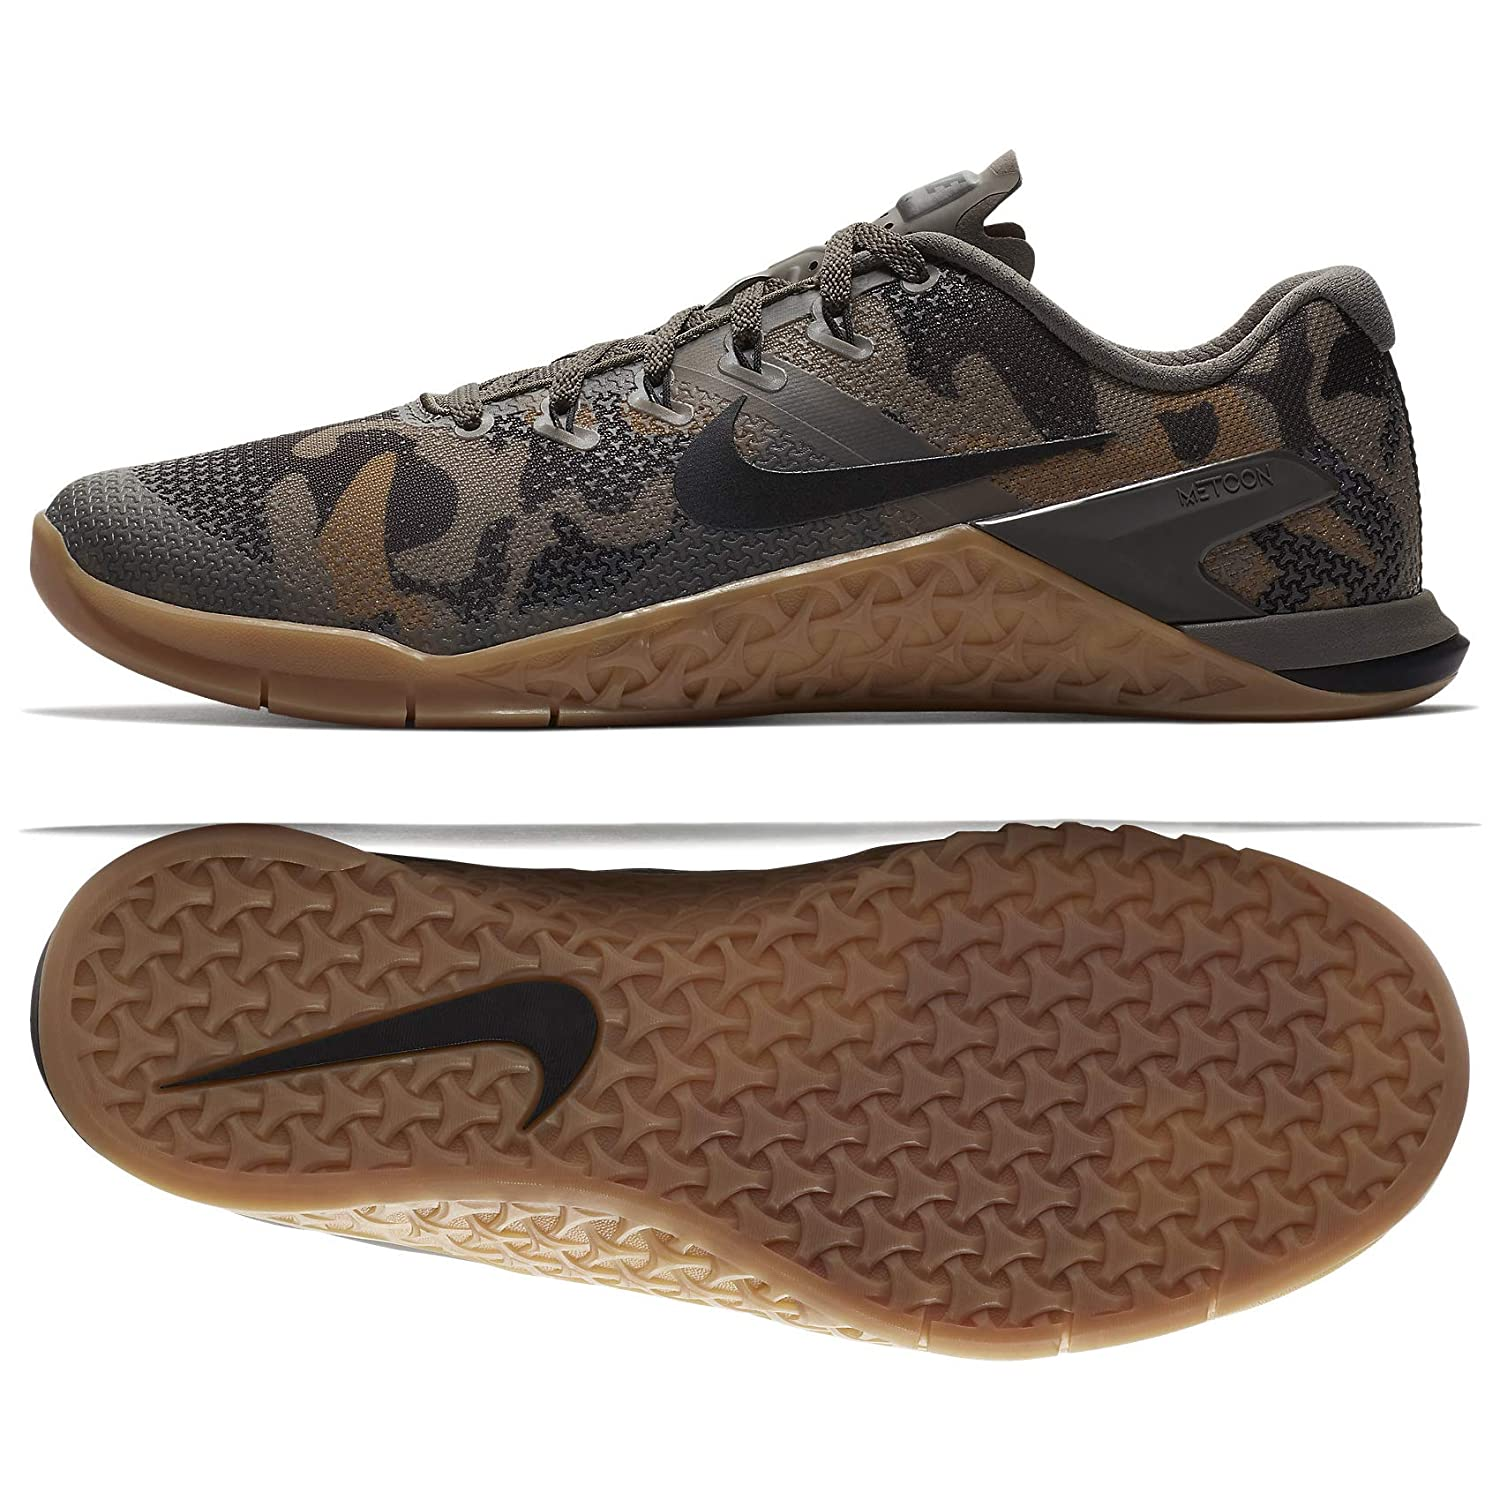 pretty nice 0d8df e542f Amazon.com  Nike Metcon 4 Mens Cross Training Shoes  Fitness   Cross-Training